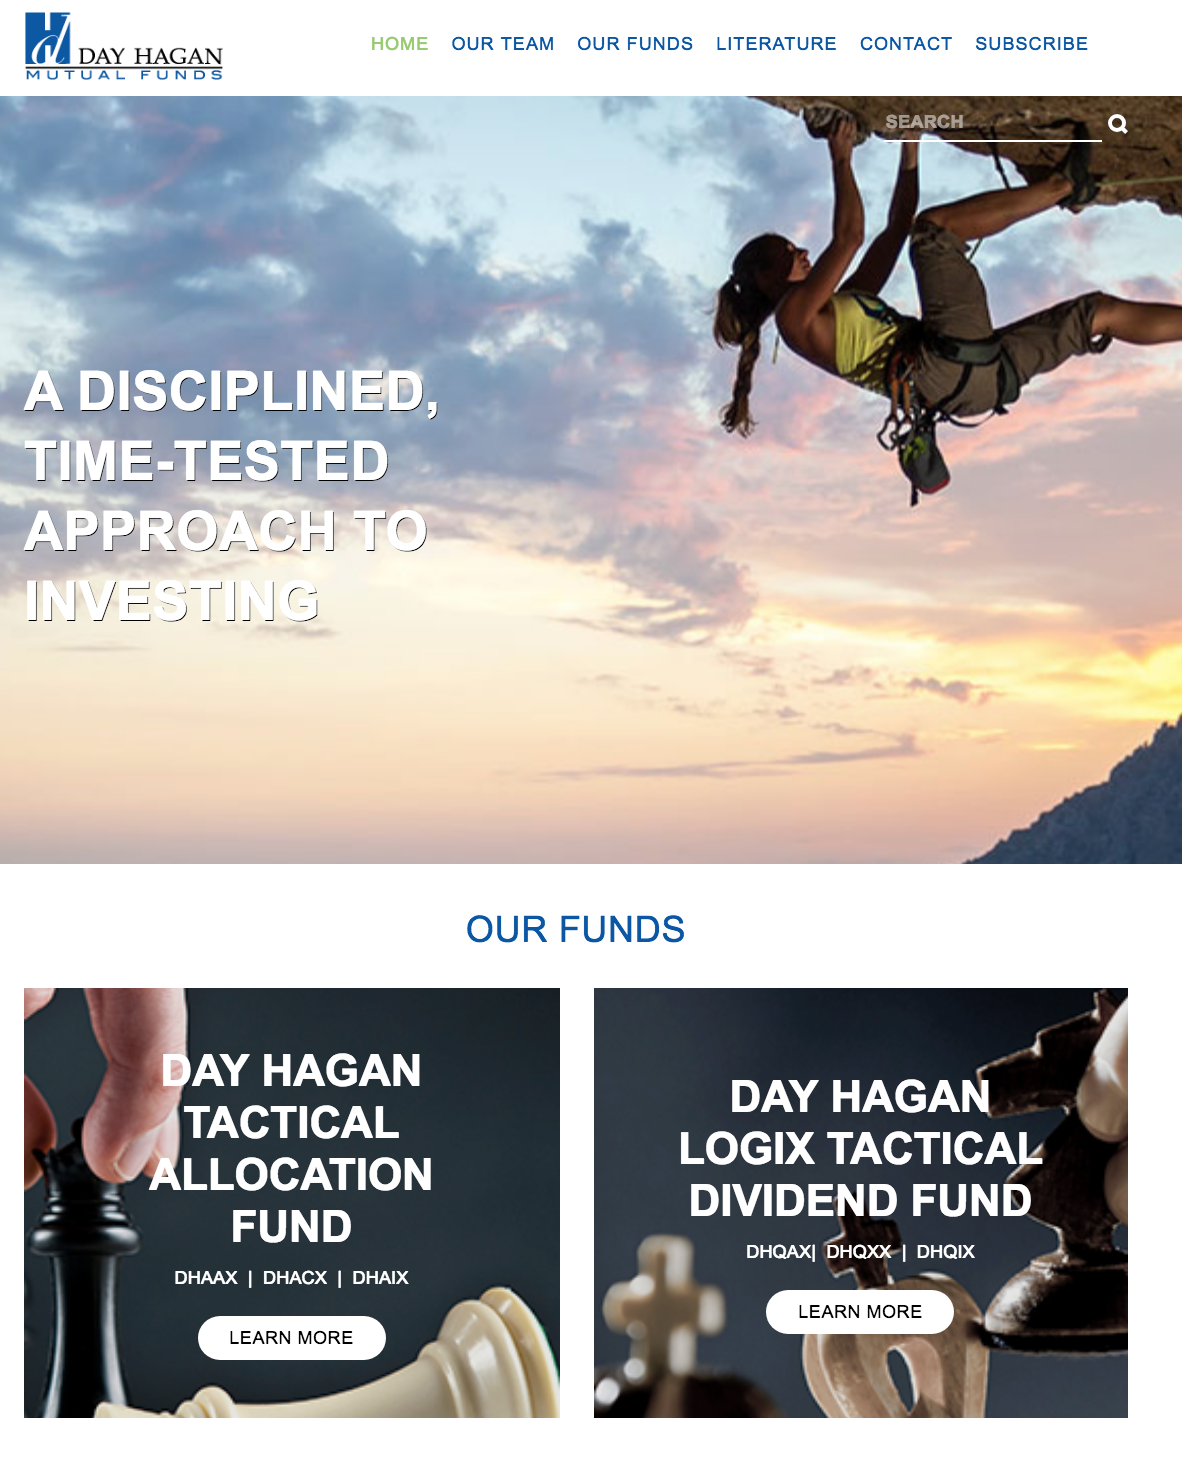 Day Hagan Funds Website Project